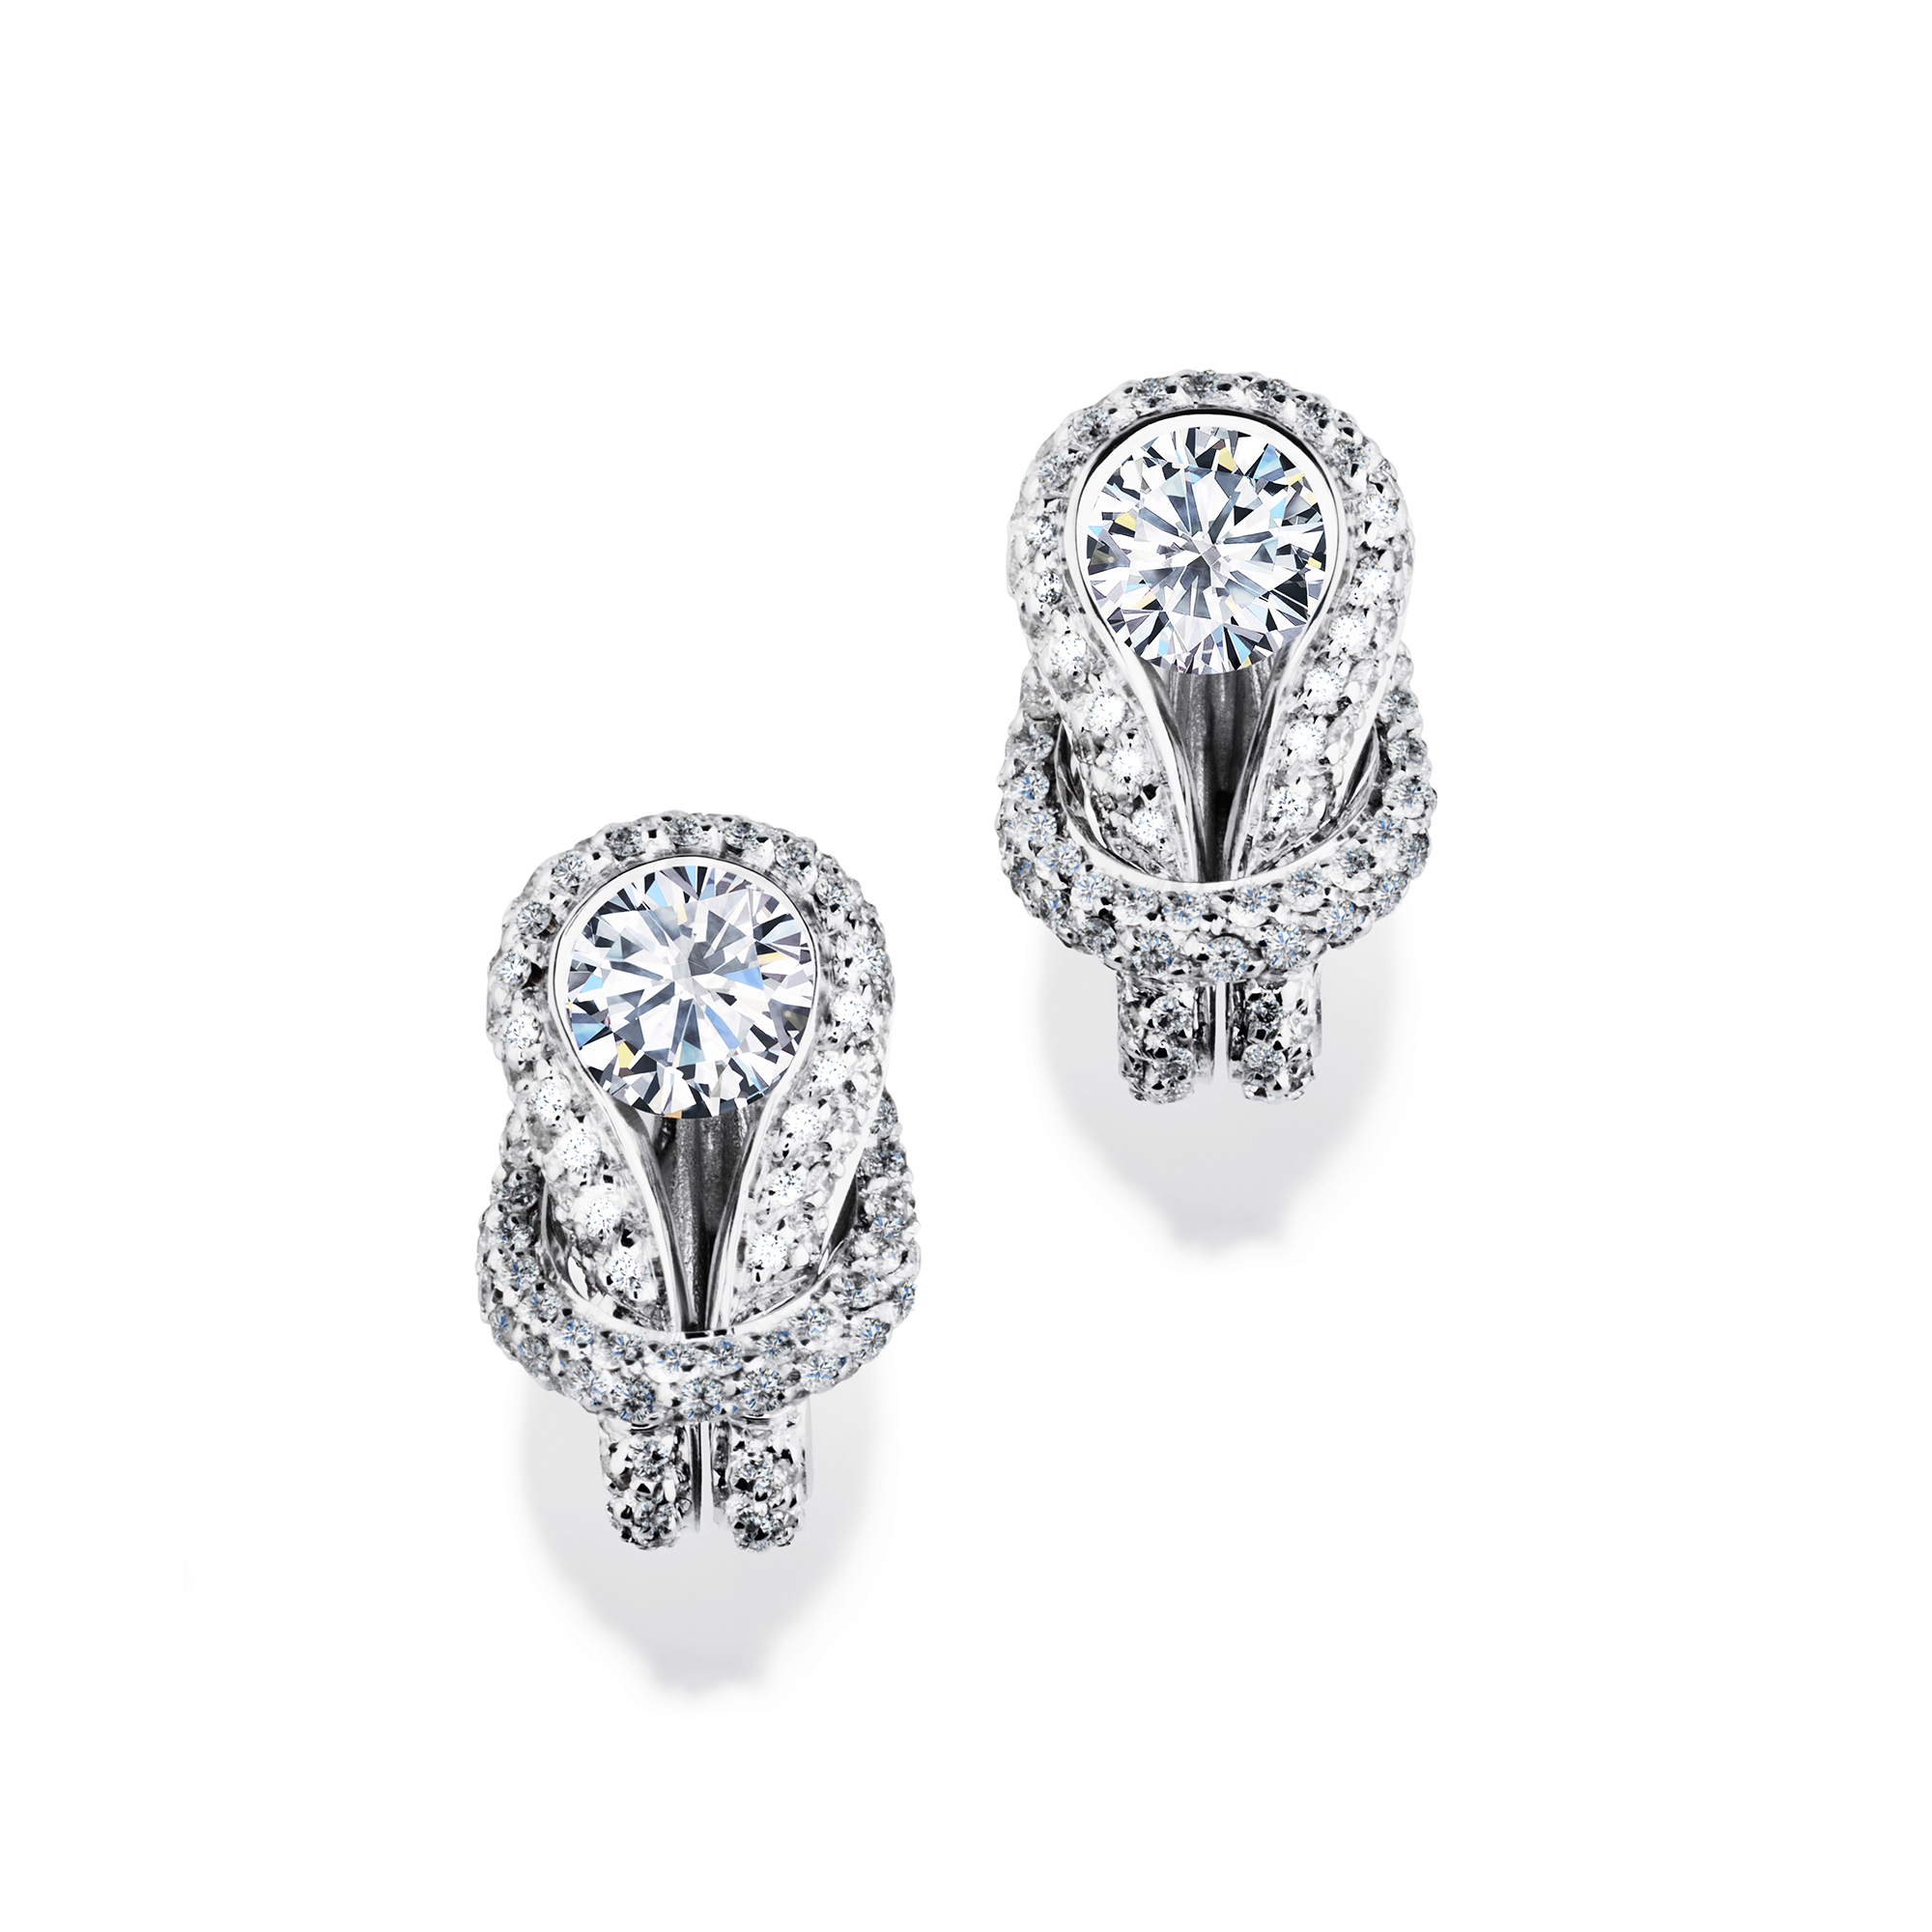 earrings coronet diamonds dead diamond solitaire drop